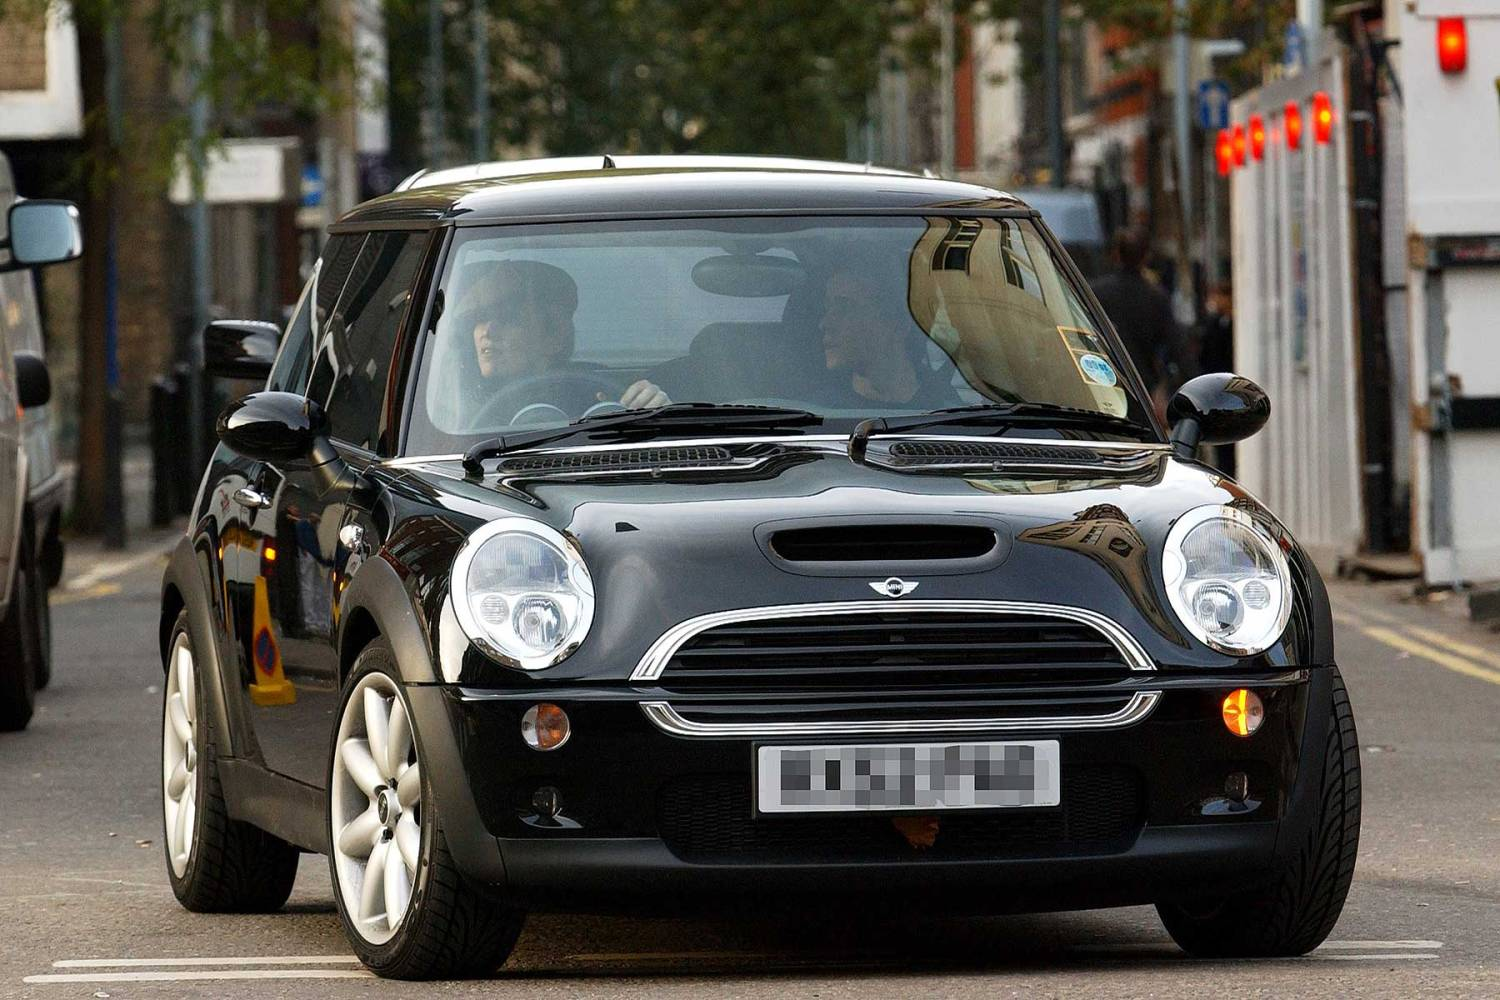 Madonnas 16 Year Old Mini Cooper S On Sale For 55000 Motoring